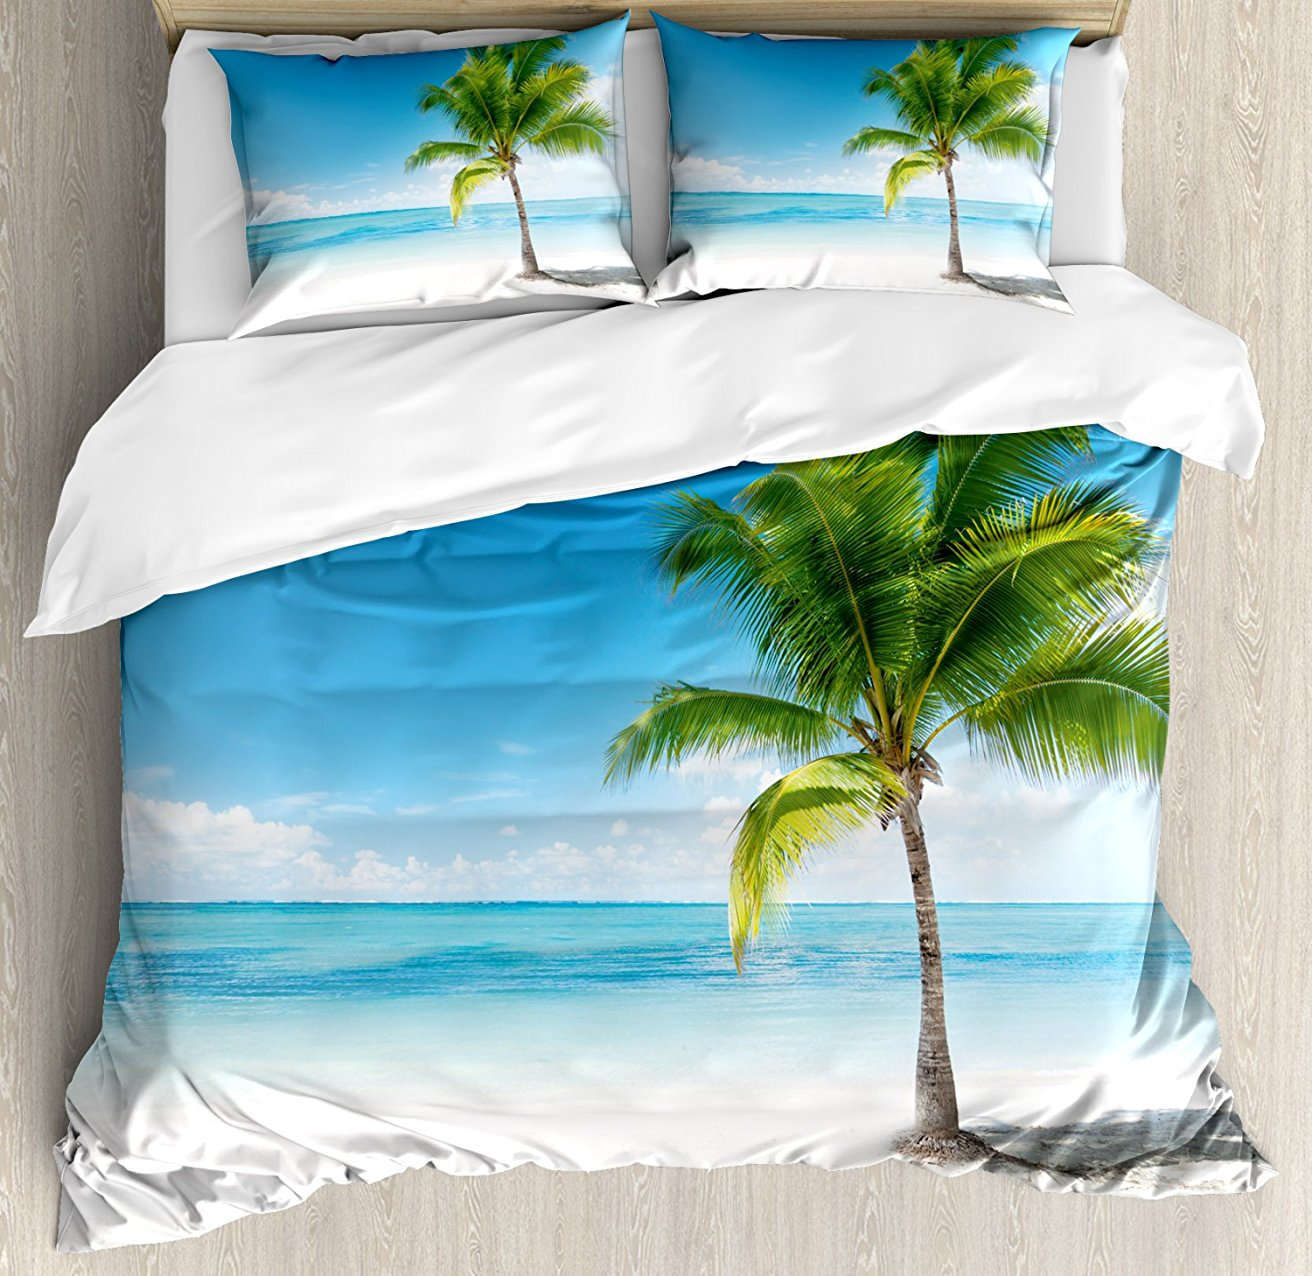 Landscape Duvet Cover Set , Caribbean Maldives Beach Island Sea Ocean Palm Trees Artwork Print, 4 Piece Bedding Set